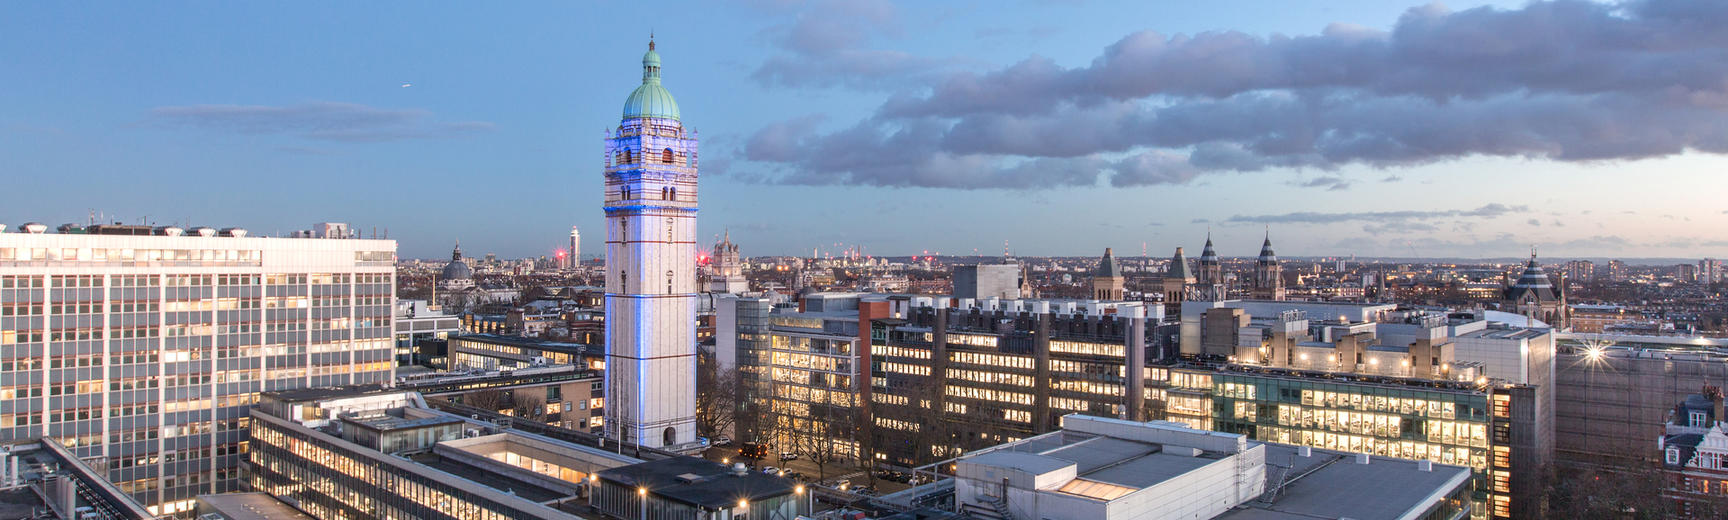 A view of South Kensington Campus and the Queen's Tower, early on a winter's evening.